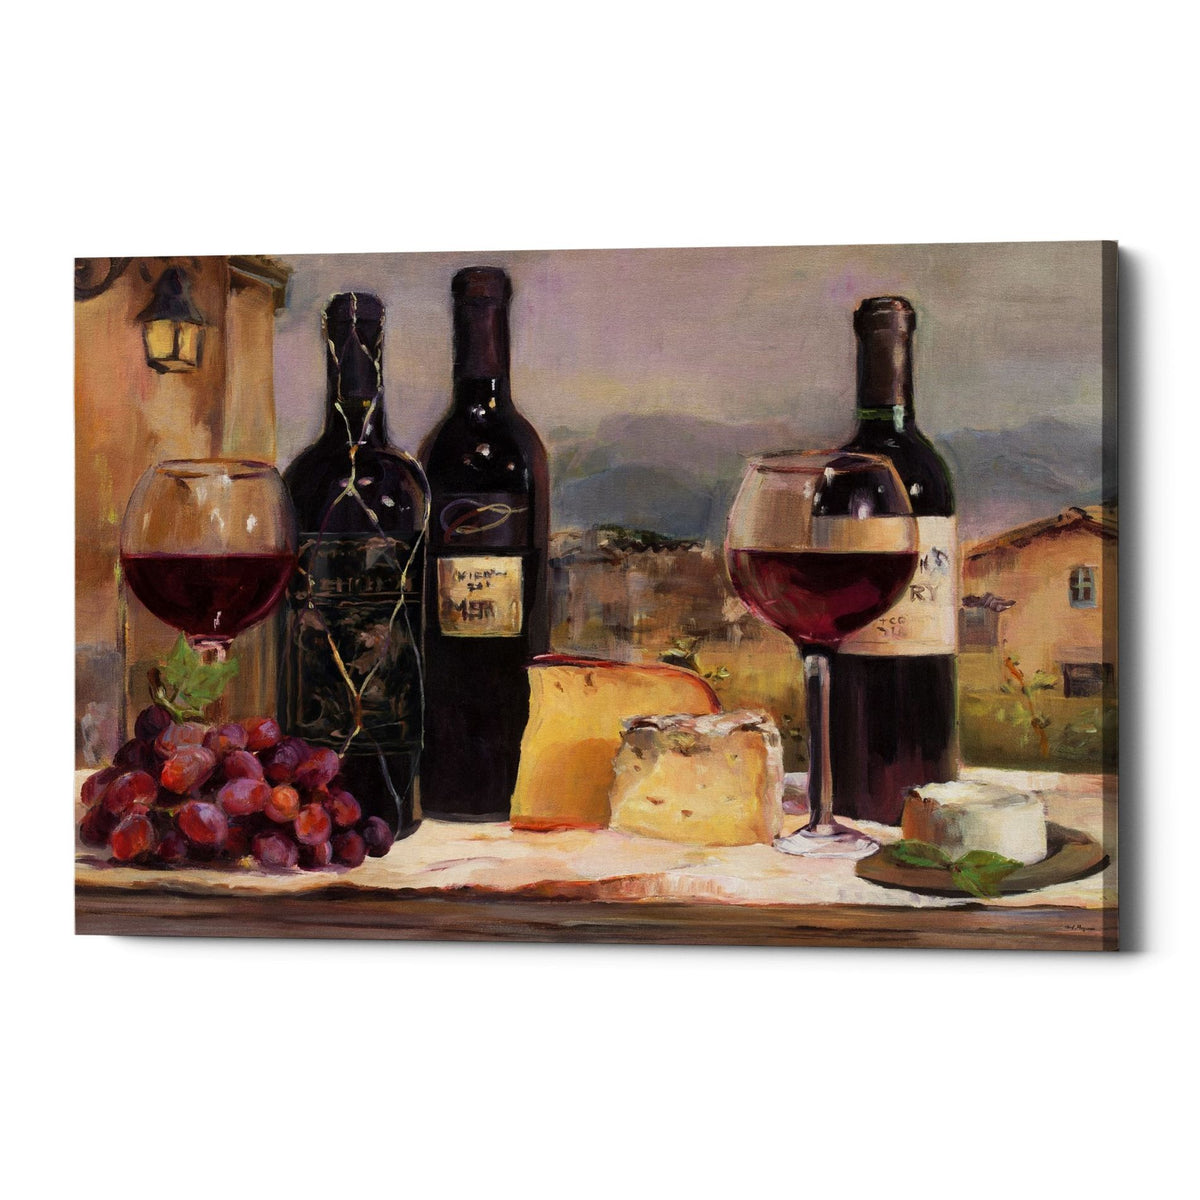 "Epic Graffiti ""Les Vins Maison"" by Marilyn Hageman, Giclee Canvas Wall Art, 12""x18"""